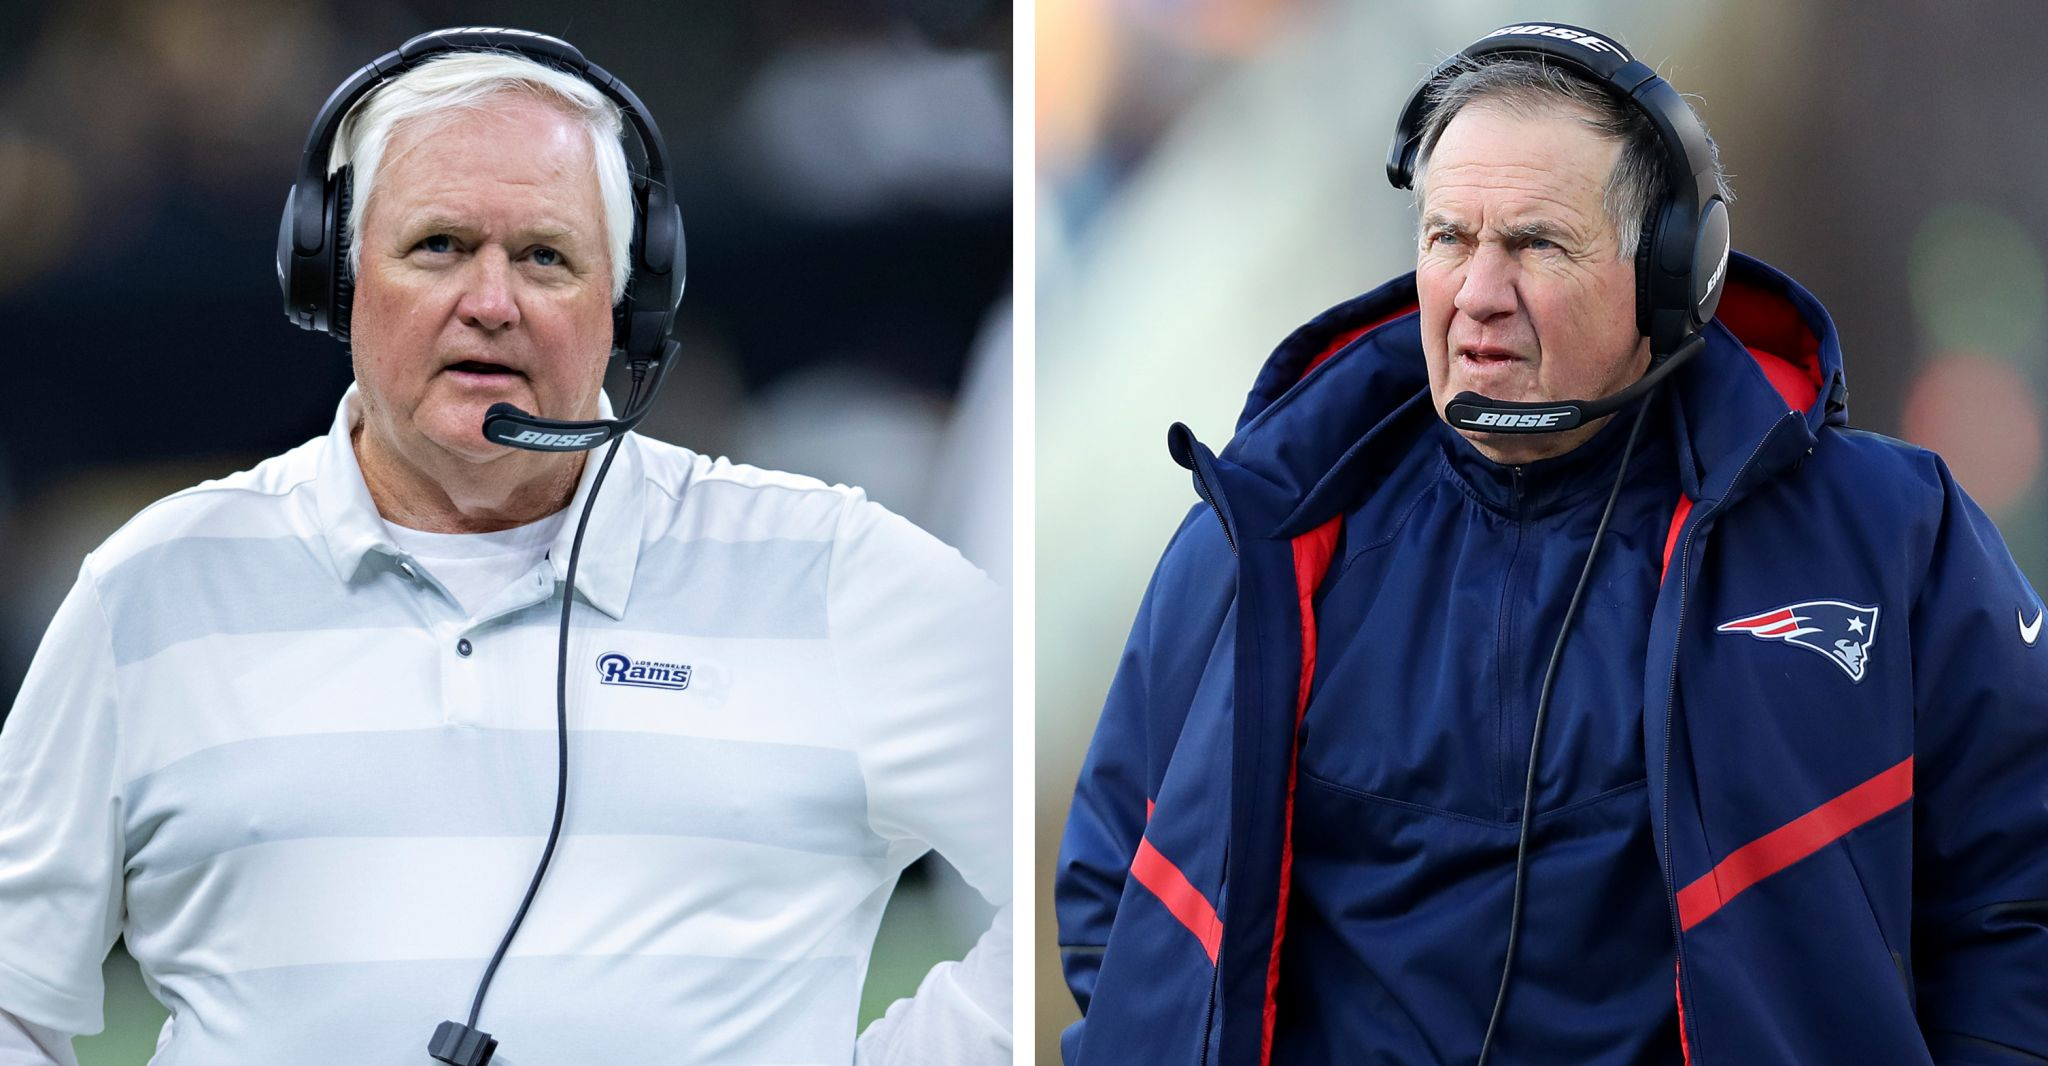 2a019f887faa4d Wade Phillips vs. Bill Belichick: another meeting of defensive minds ...